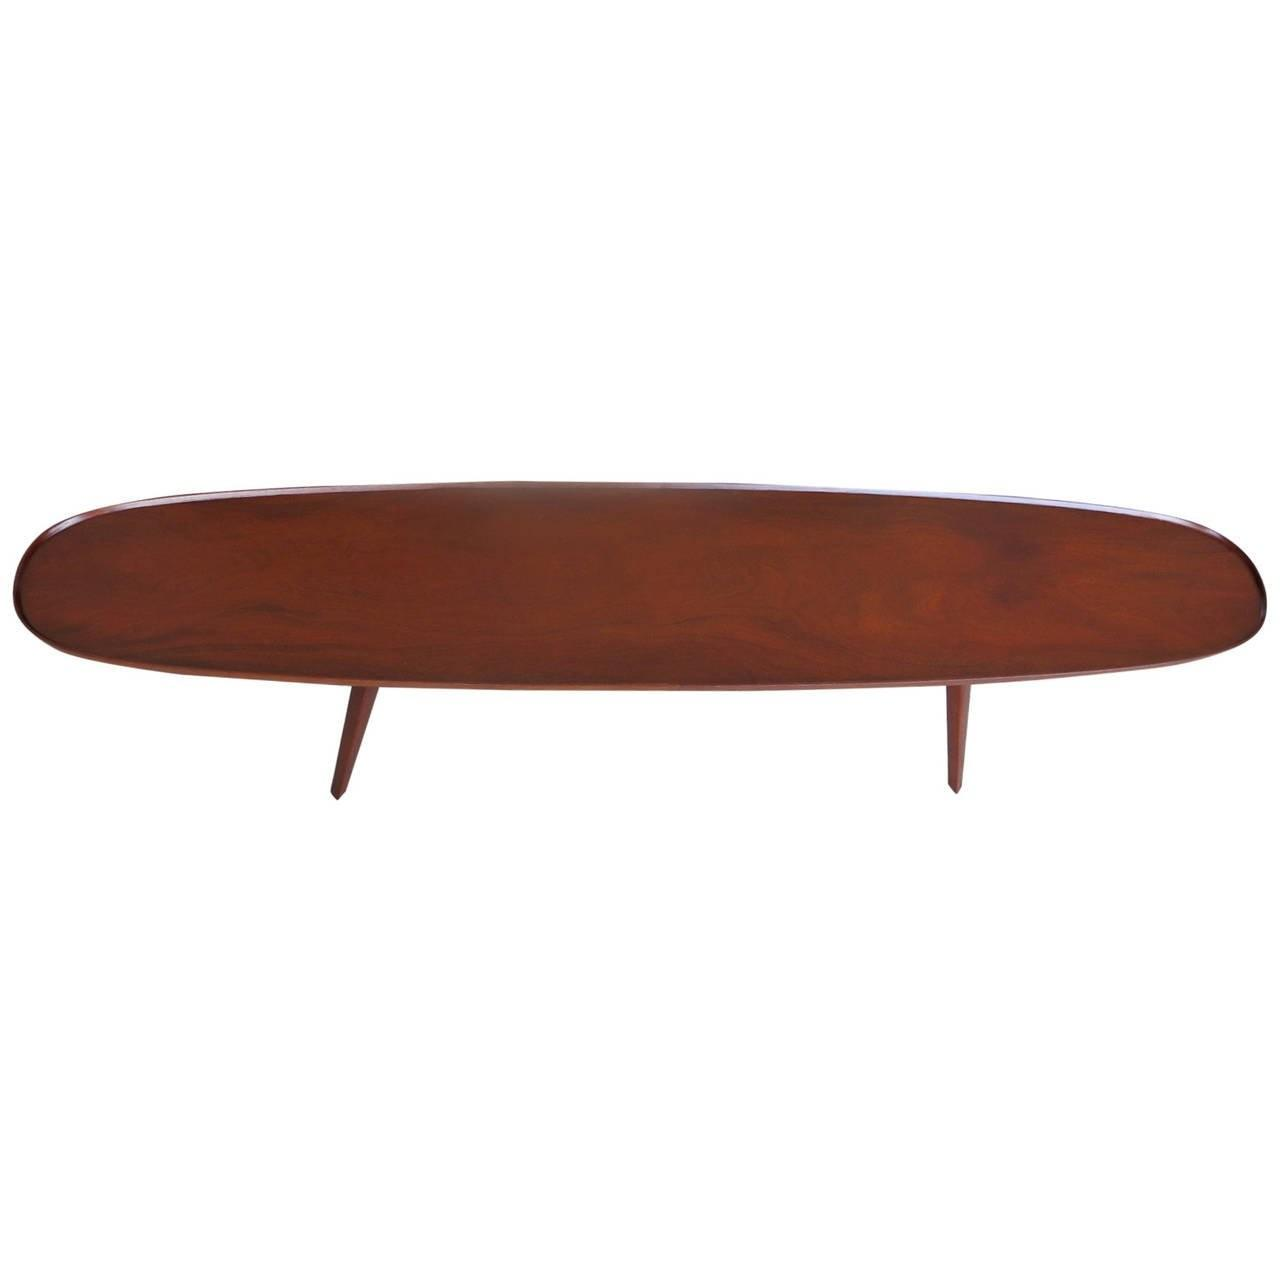 Edward Wormley Dunbar Surfboard Table 1stdibs